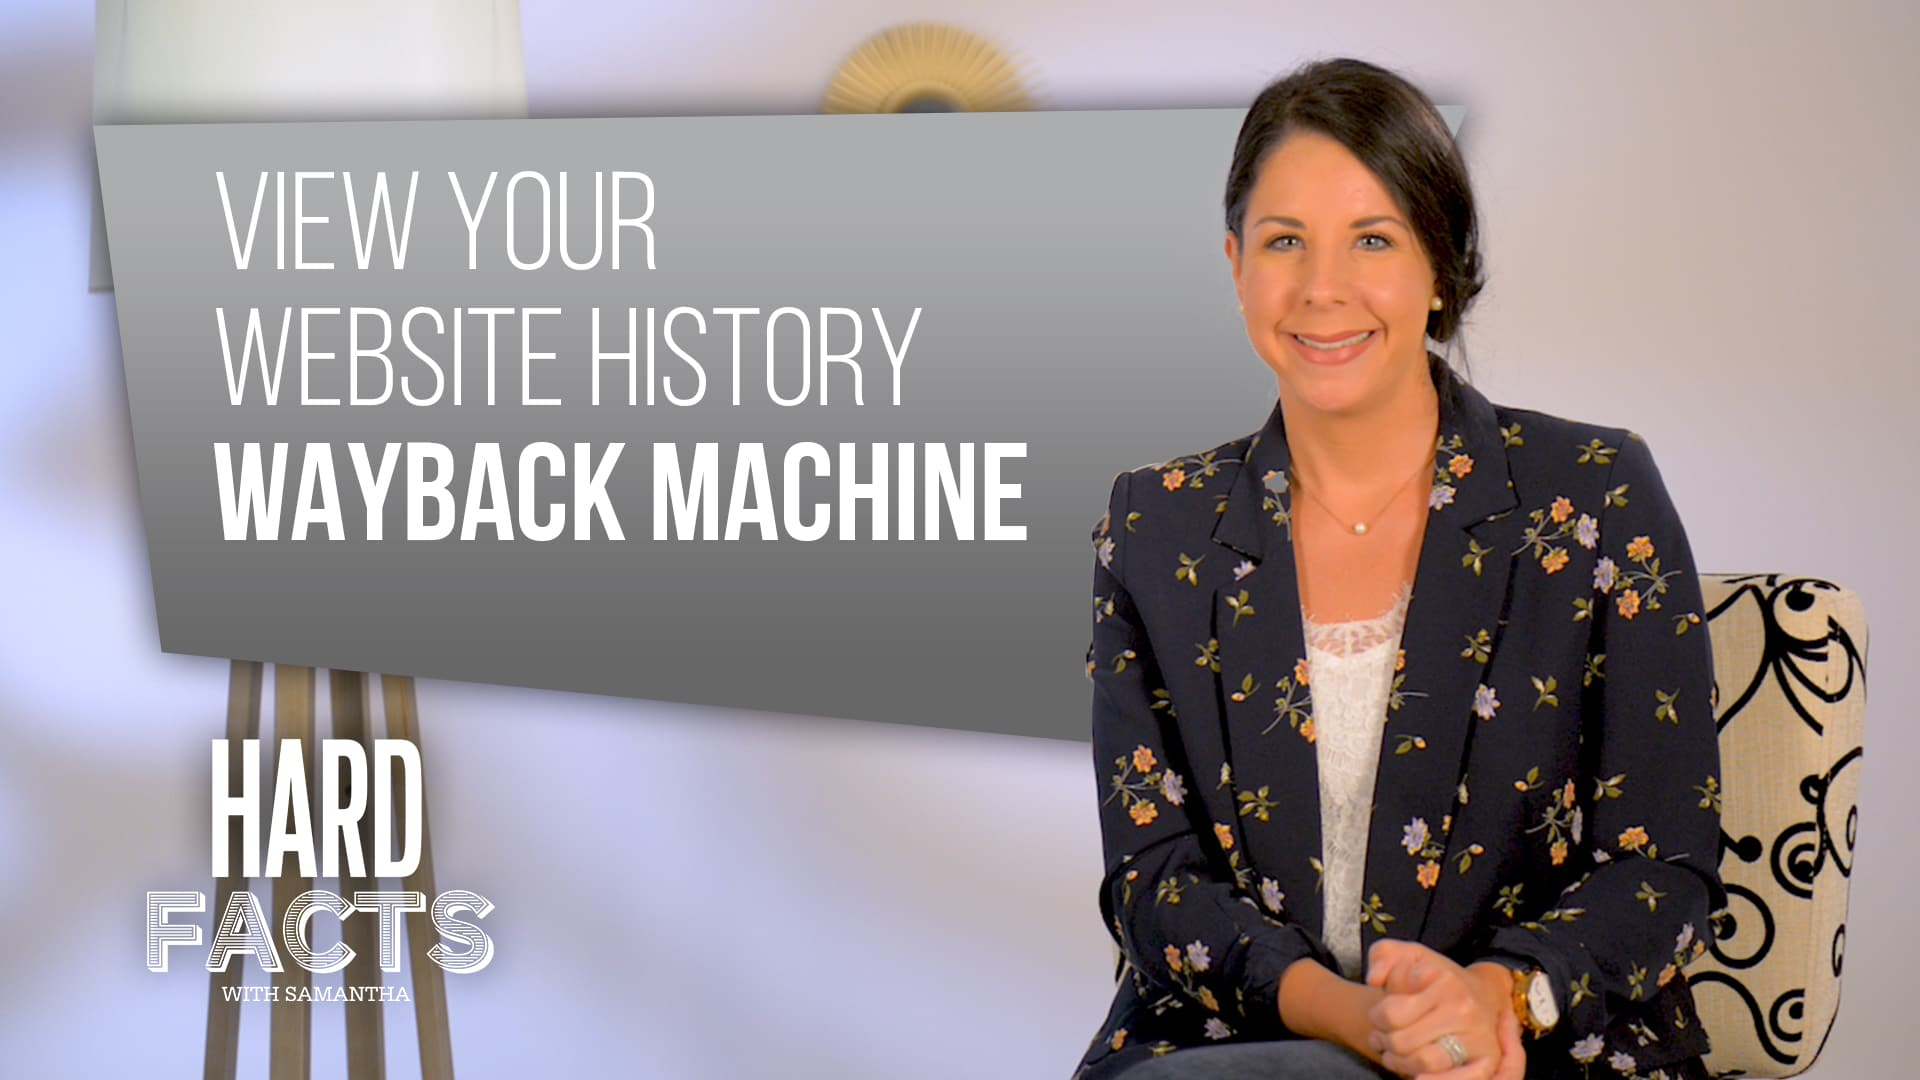 View Your Website History – Wayback Machine